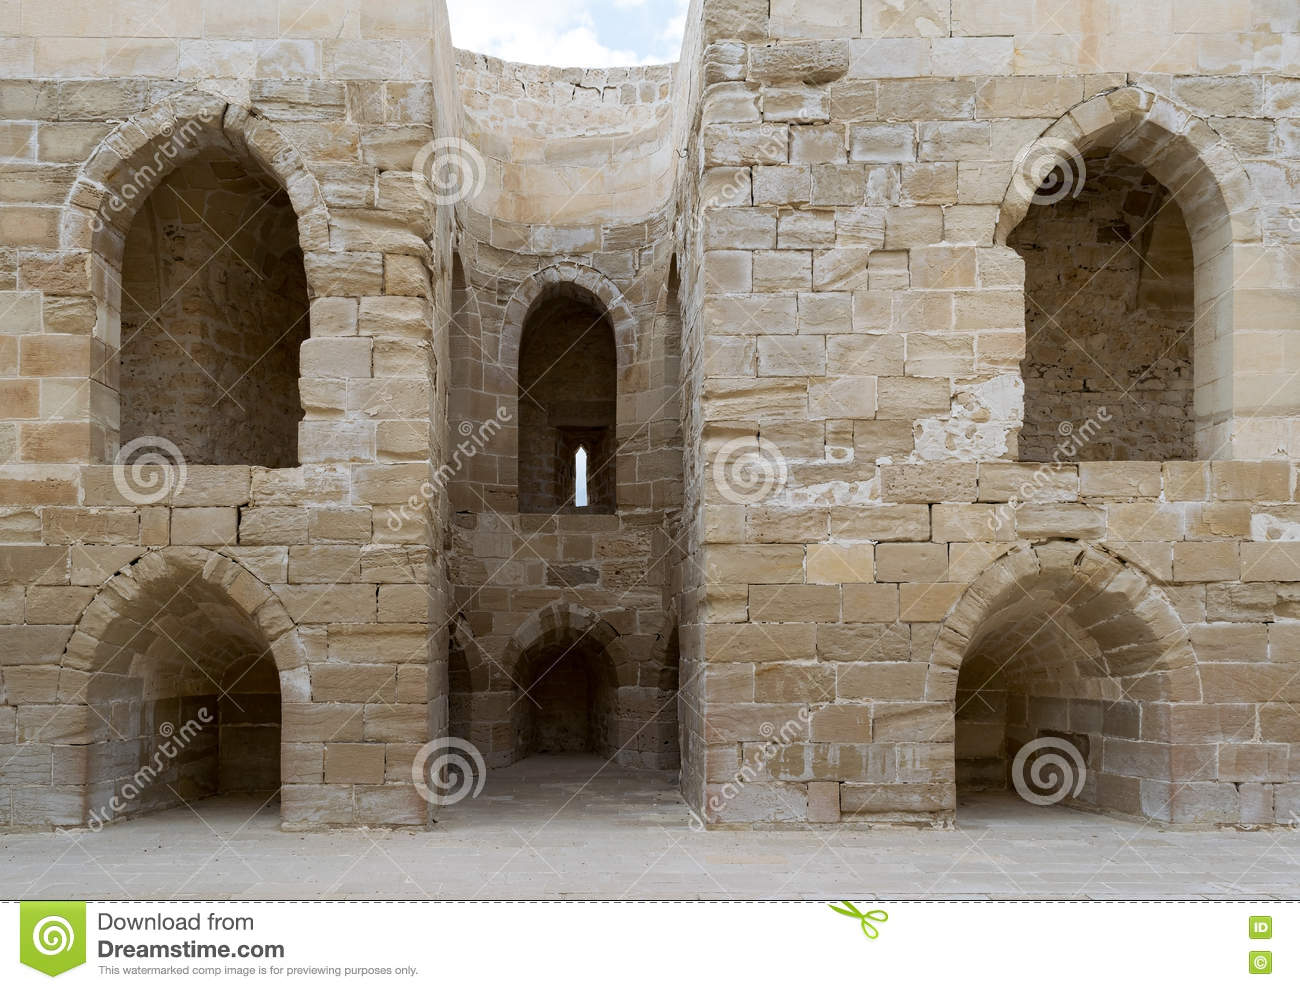 Ruins of old wall with arched cavities